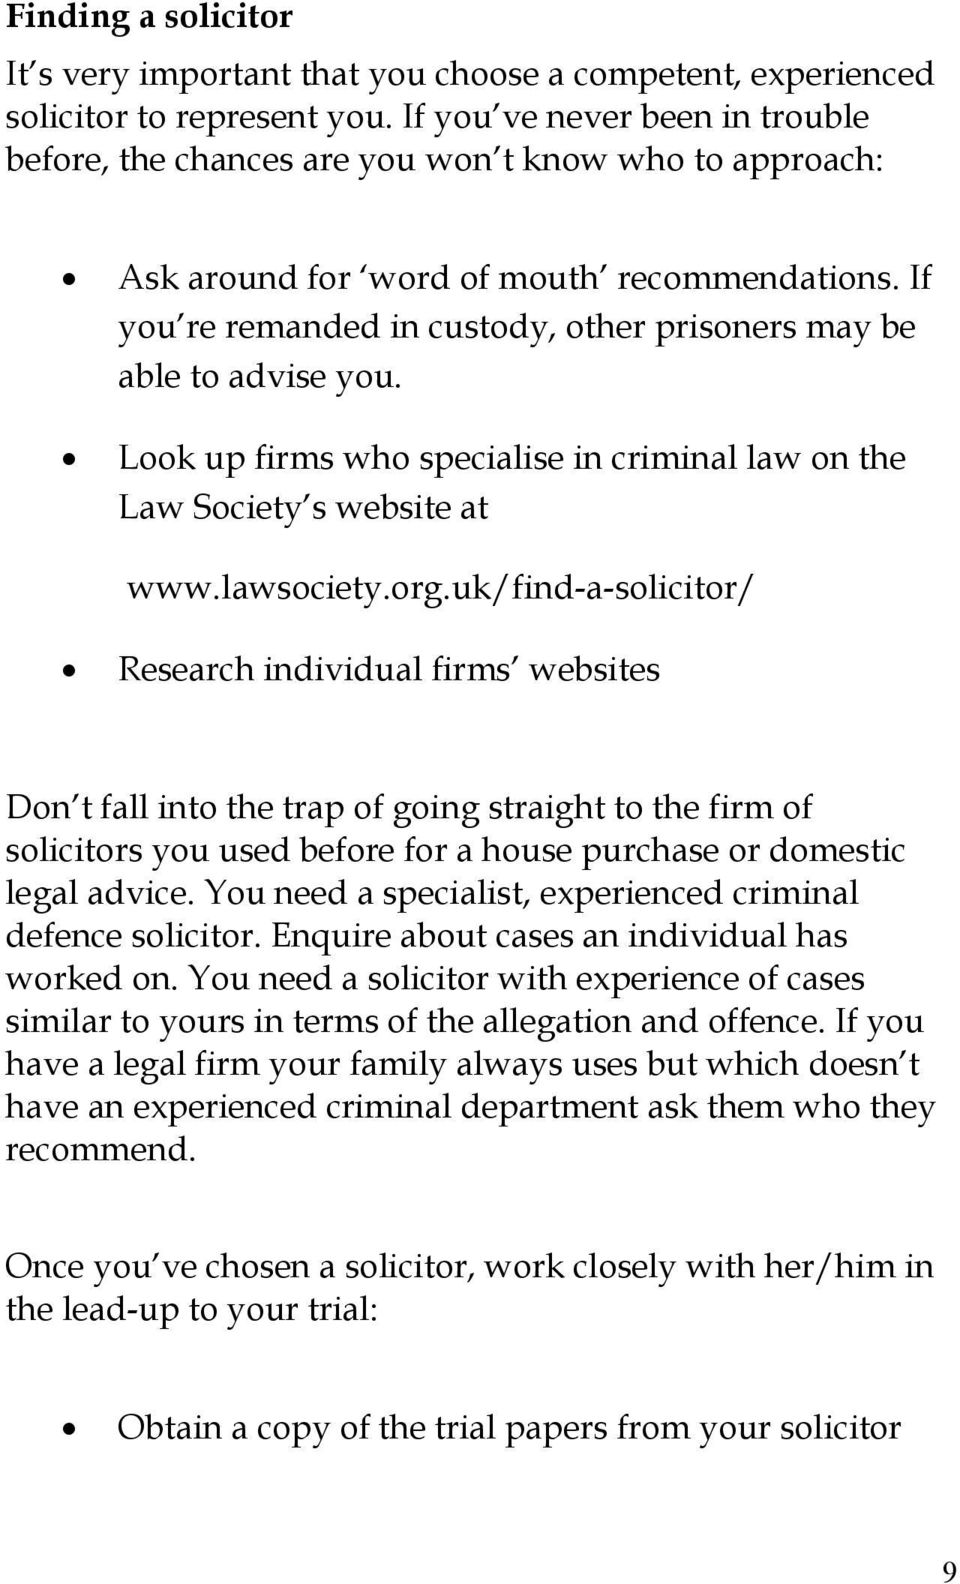 If you re remanded in custody, other prisoners may be able to advise you. Look up firms who specialise in criminal law on the Law Society s website at www.lawsociety.org.